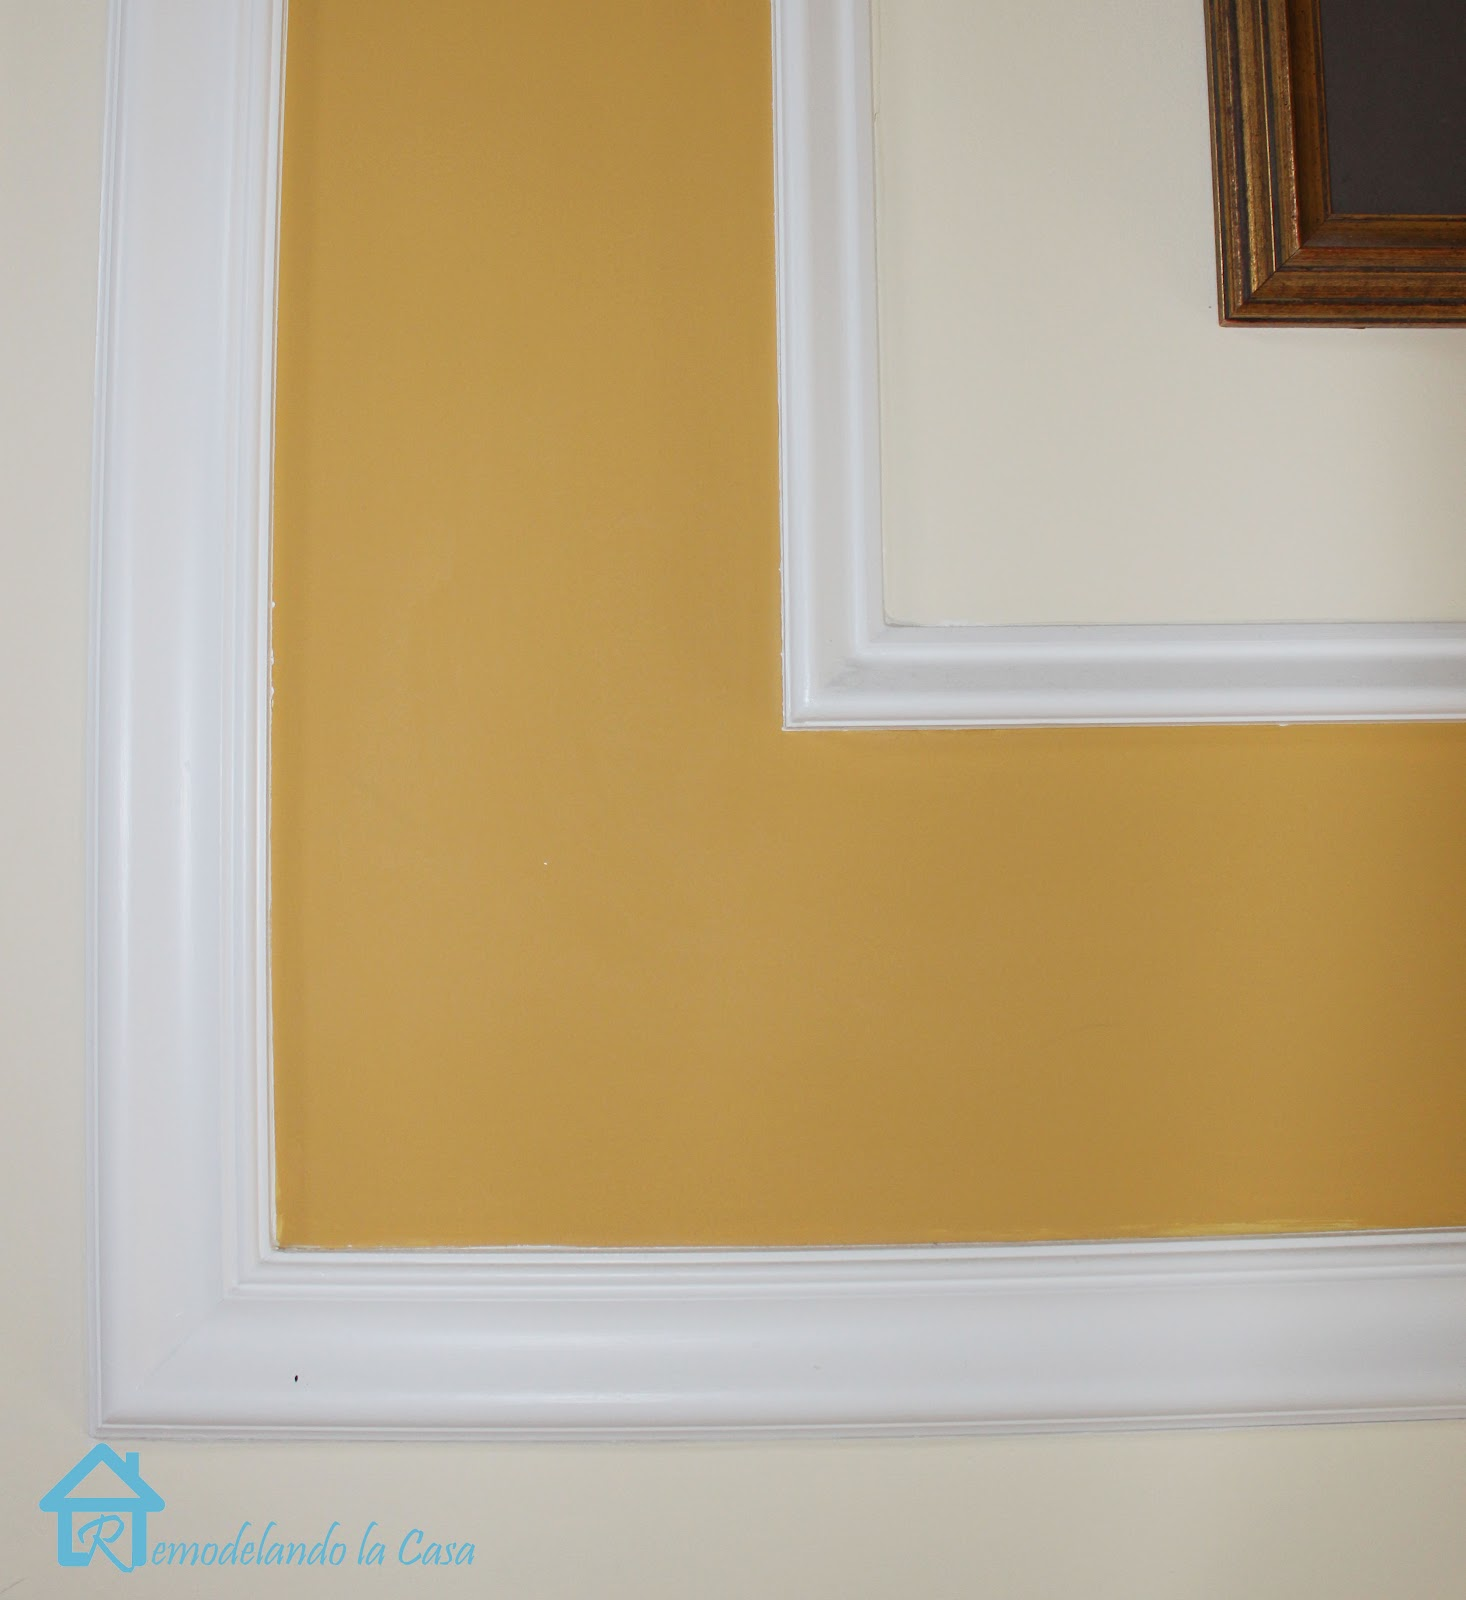 Dorable Wall Frame Molding Elaboration - Picture Frame Ideas ...